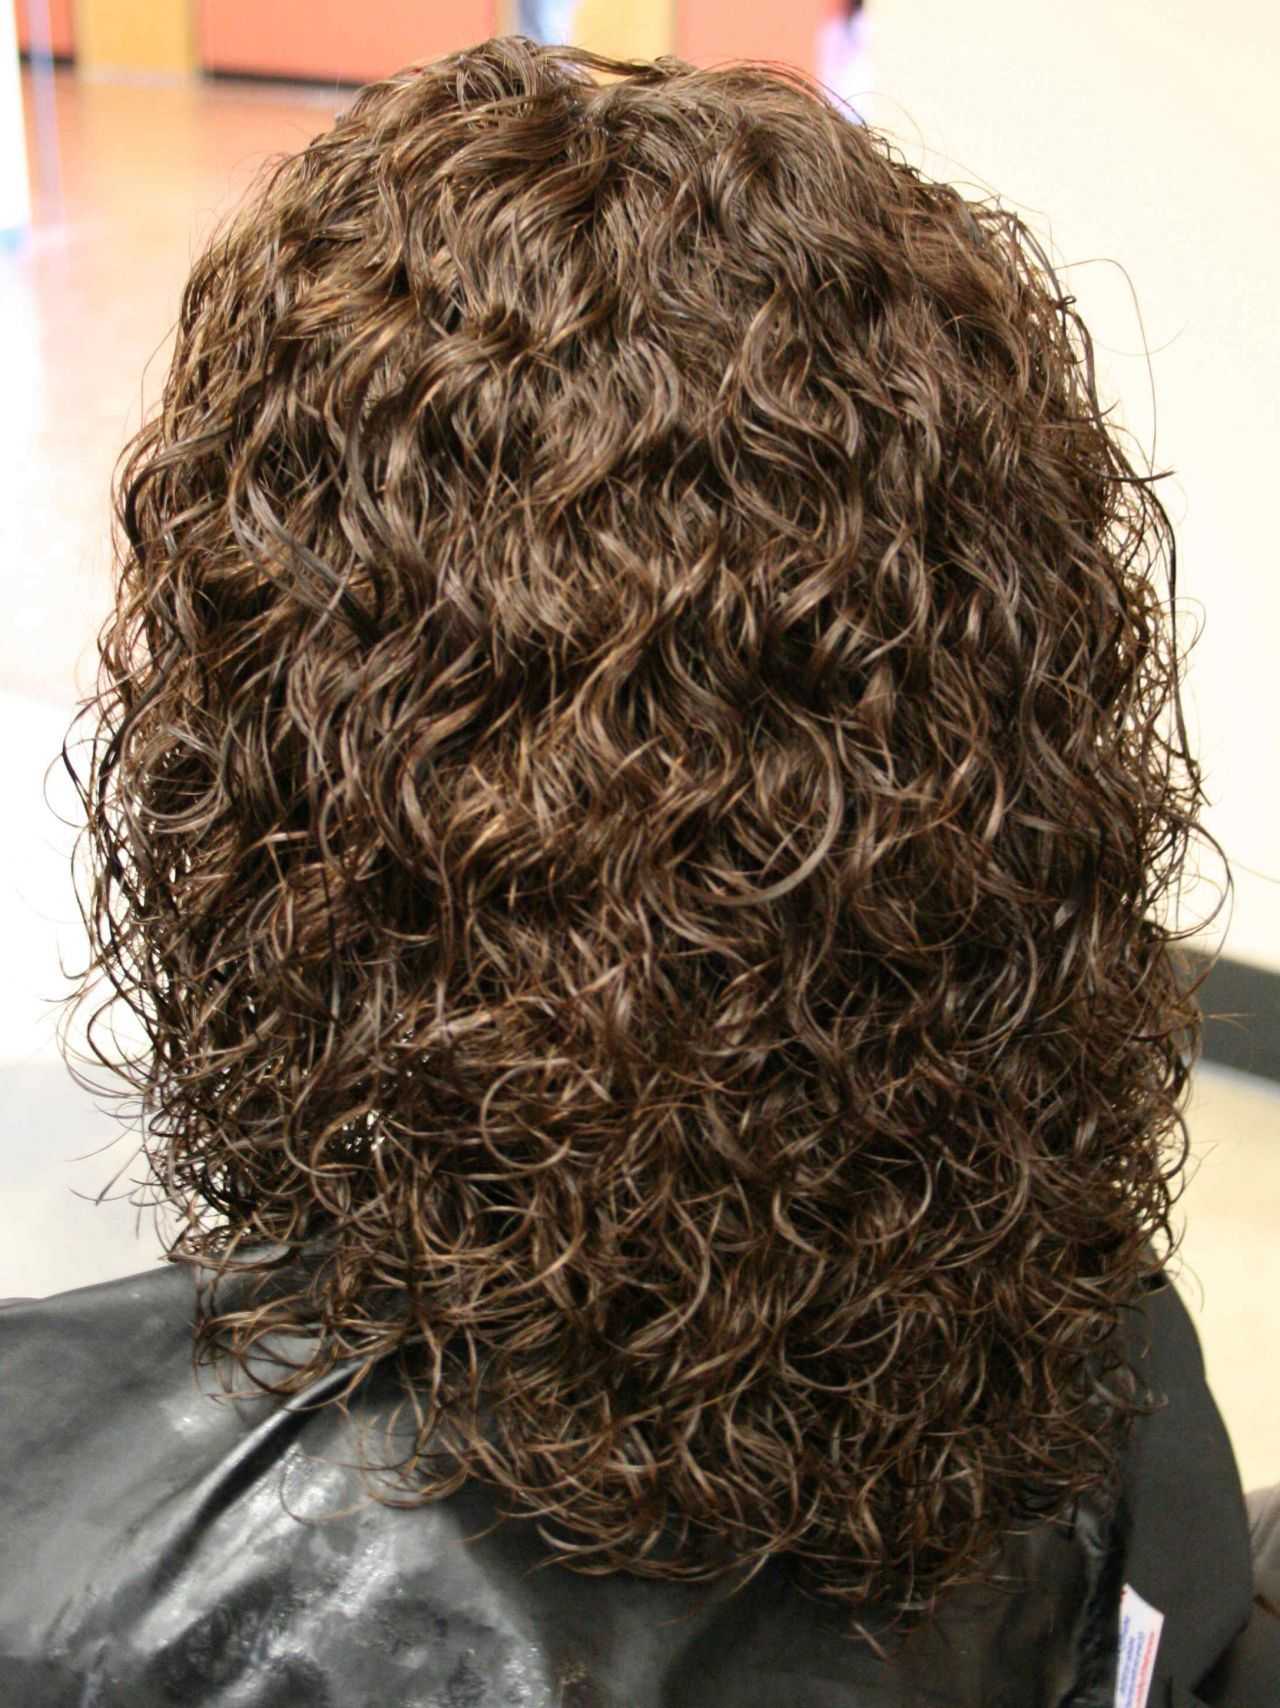 Perms For Medium Length Hair Spiral Perm Hairstyles On Medium Length Hair Pictures Gallery Exam Permed Hairstyles Medium Length Hair Styles Short Permed Hair